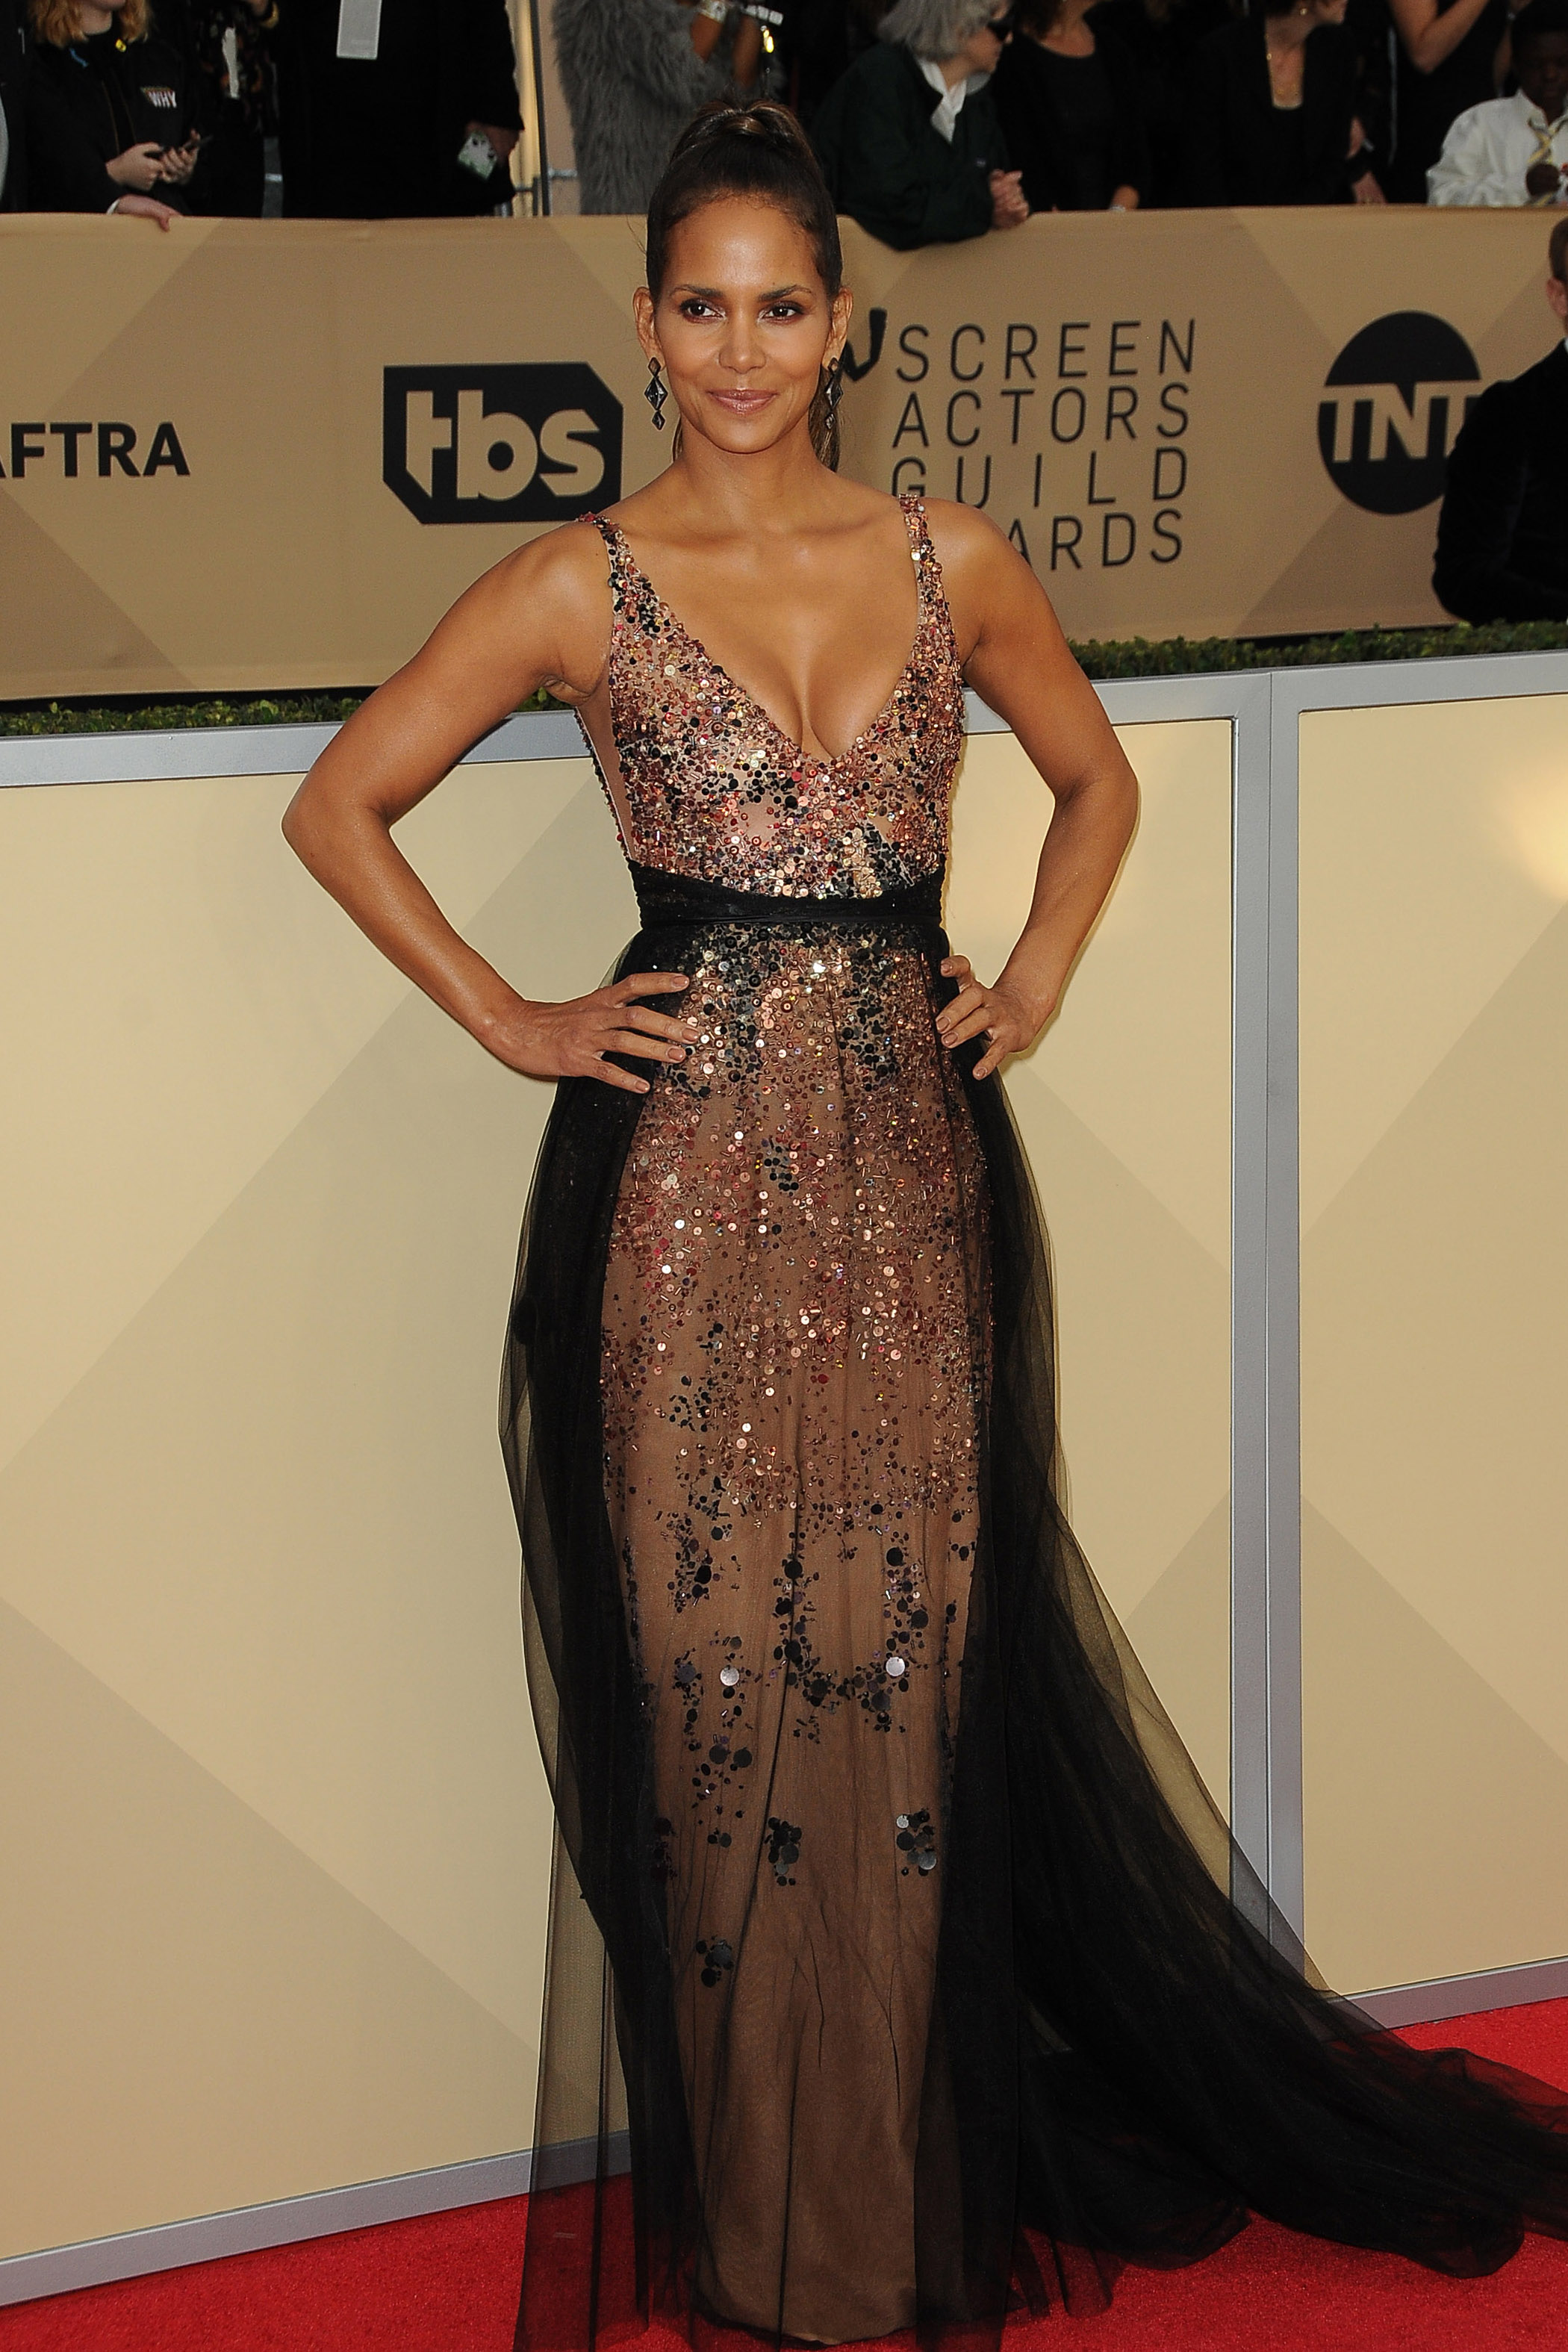 Arrivals for the 24th Annual Screen Actors Guild Awards, held at the Shrine Exposition Center in Los Angeles, California <P> Pictured: Halle Berry <B>Ref: SPL1649120  210118  </B><BR/> Picture by: Splash News<BR/> </P><P> <B>Splash News and Pictures</B><BR/> Los Angeles:	310-821-2666<BR/> New York:	212-619-2666<BR/> London:	870-934-2666<BR/> <span id=